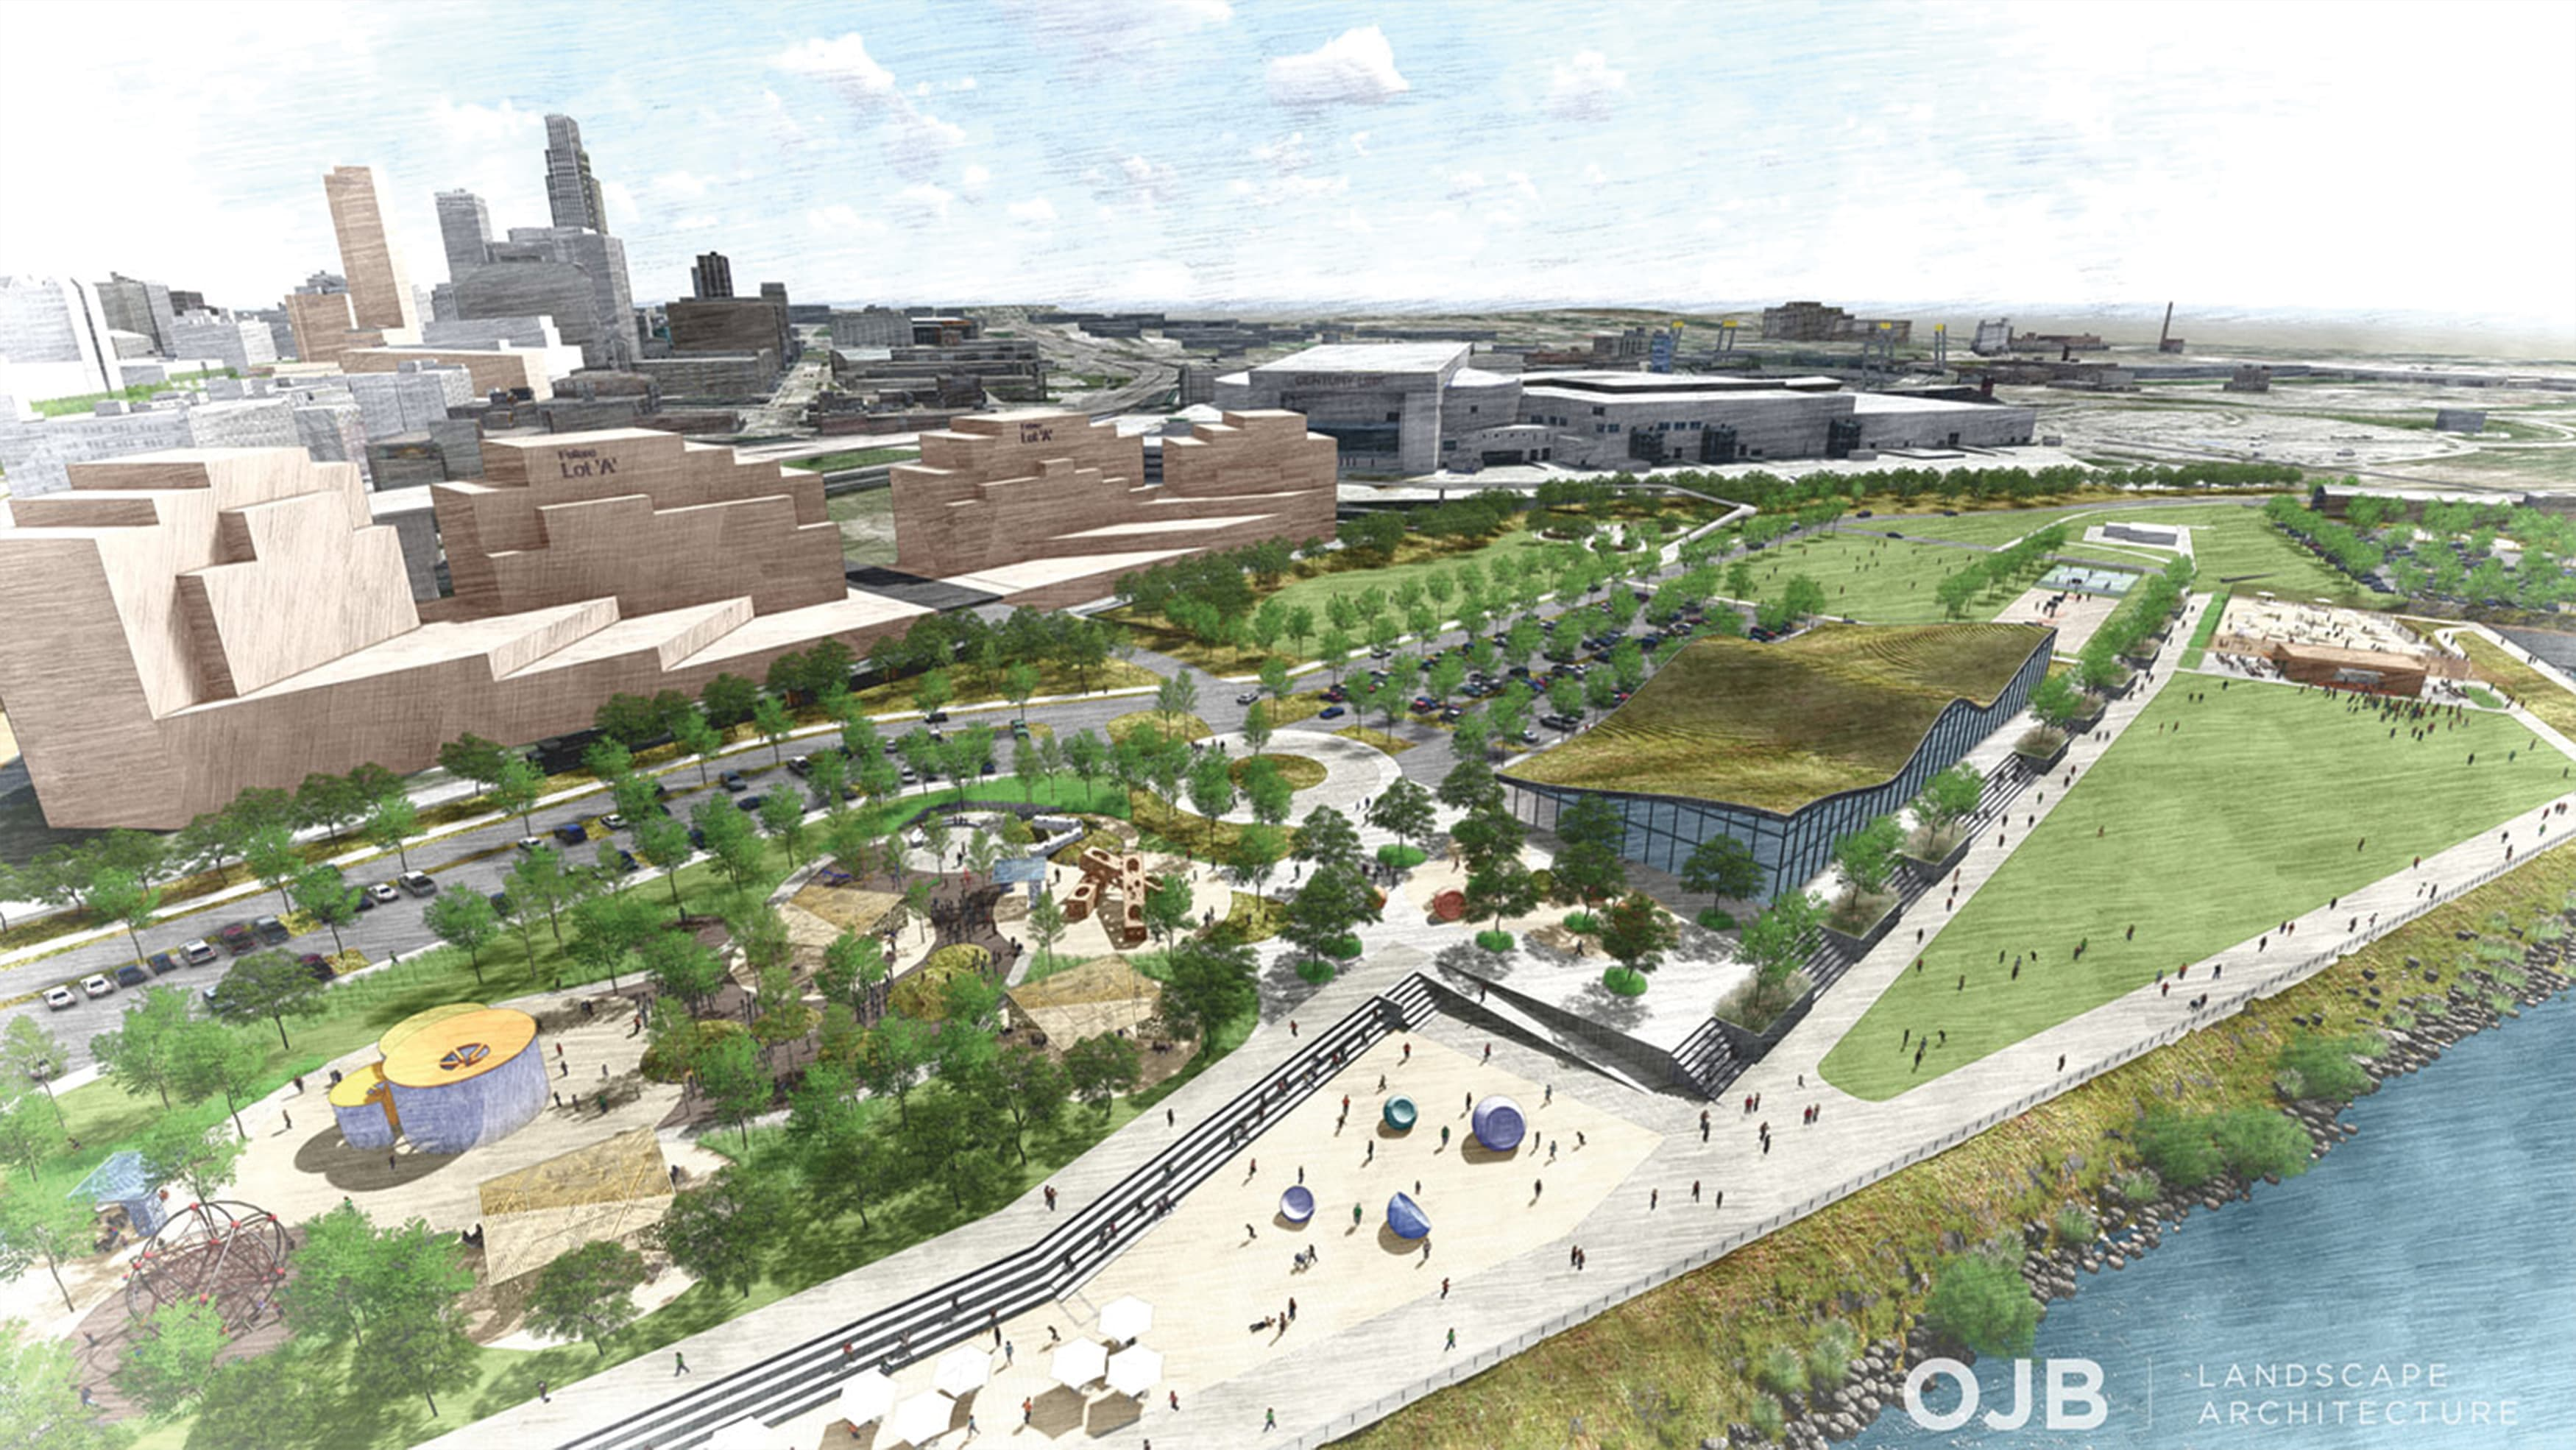 A rendering of the Missouri Riverfront Revitalization Project depicting expanses of open space, play areas, and buildings.